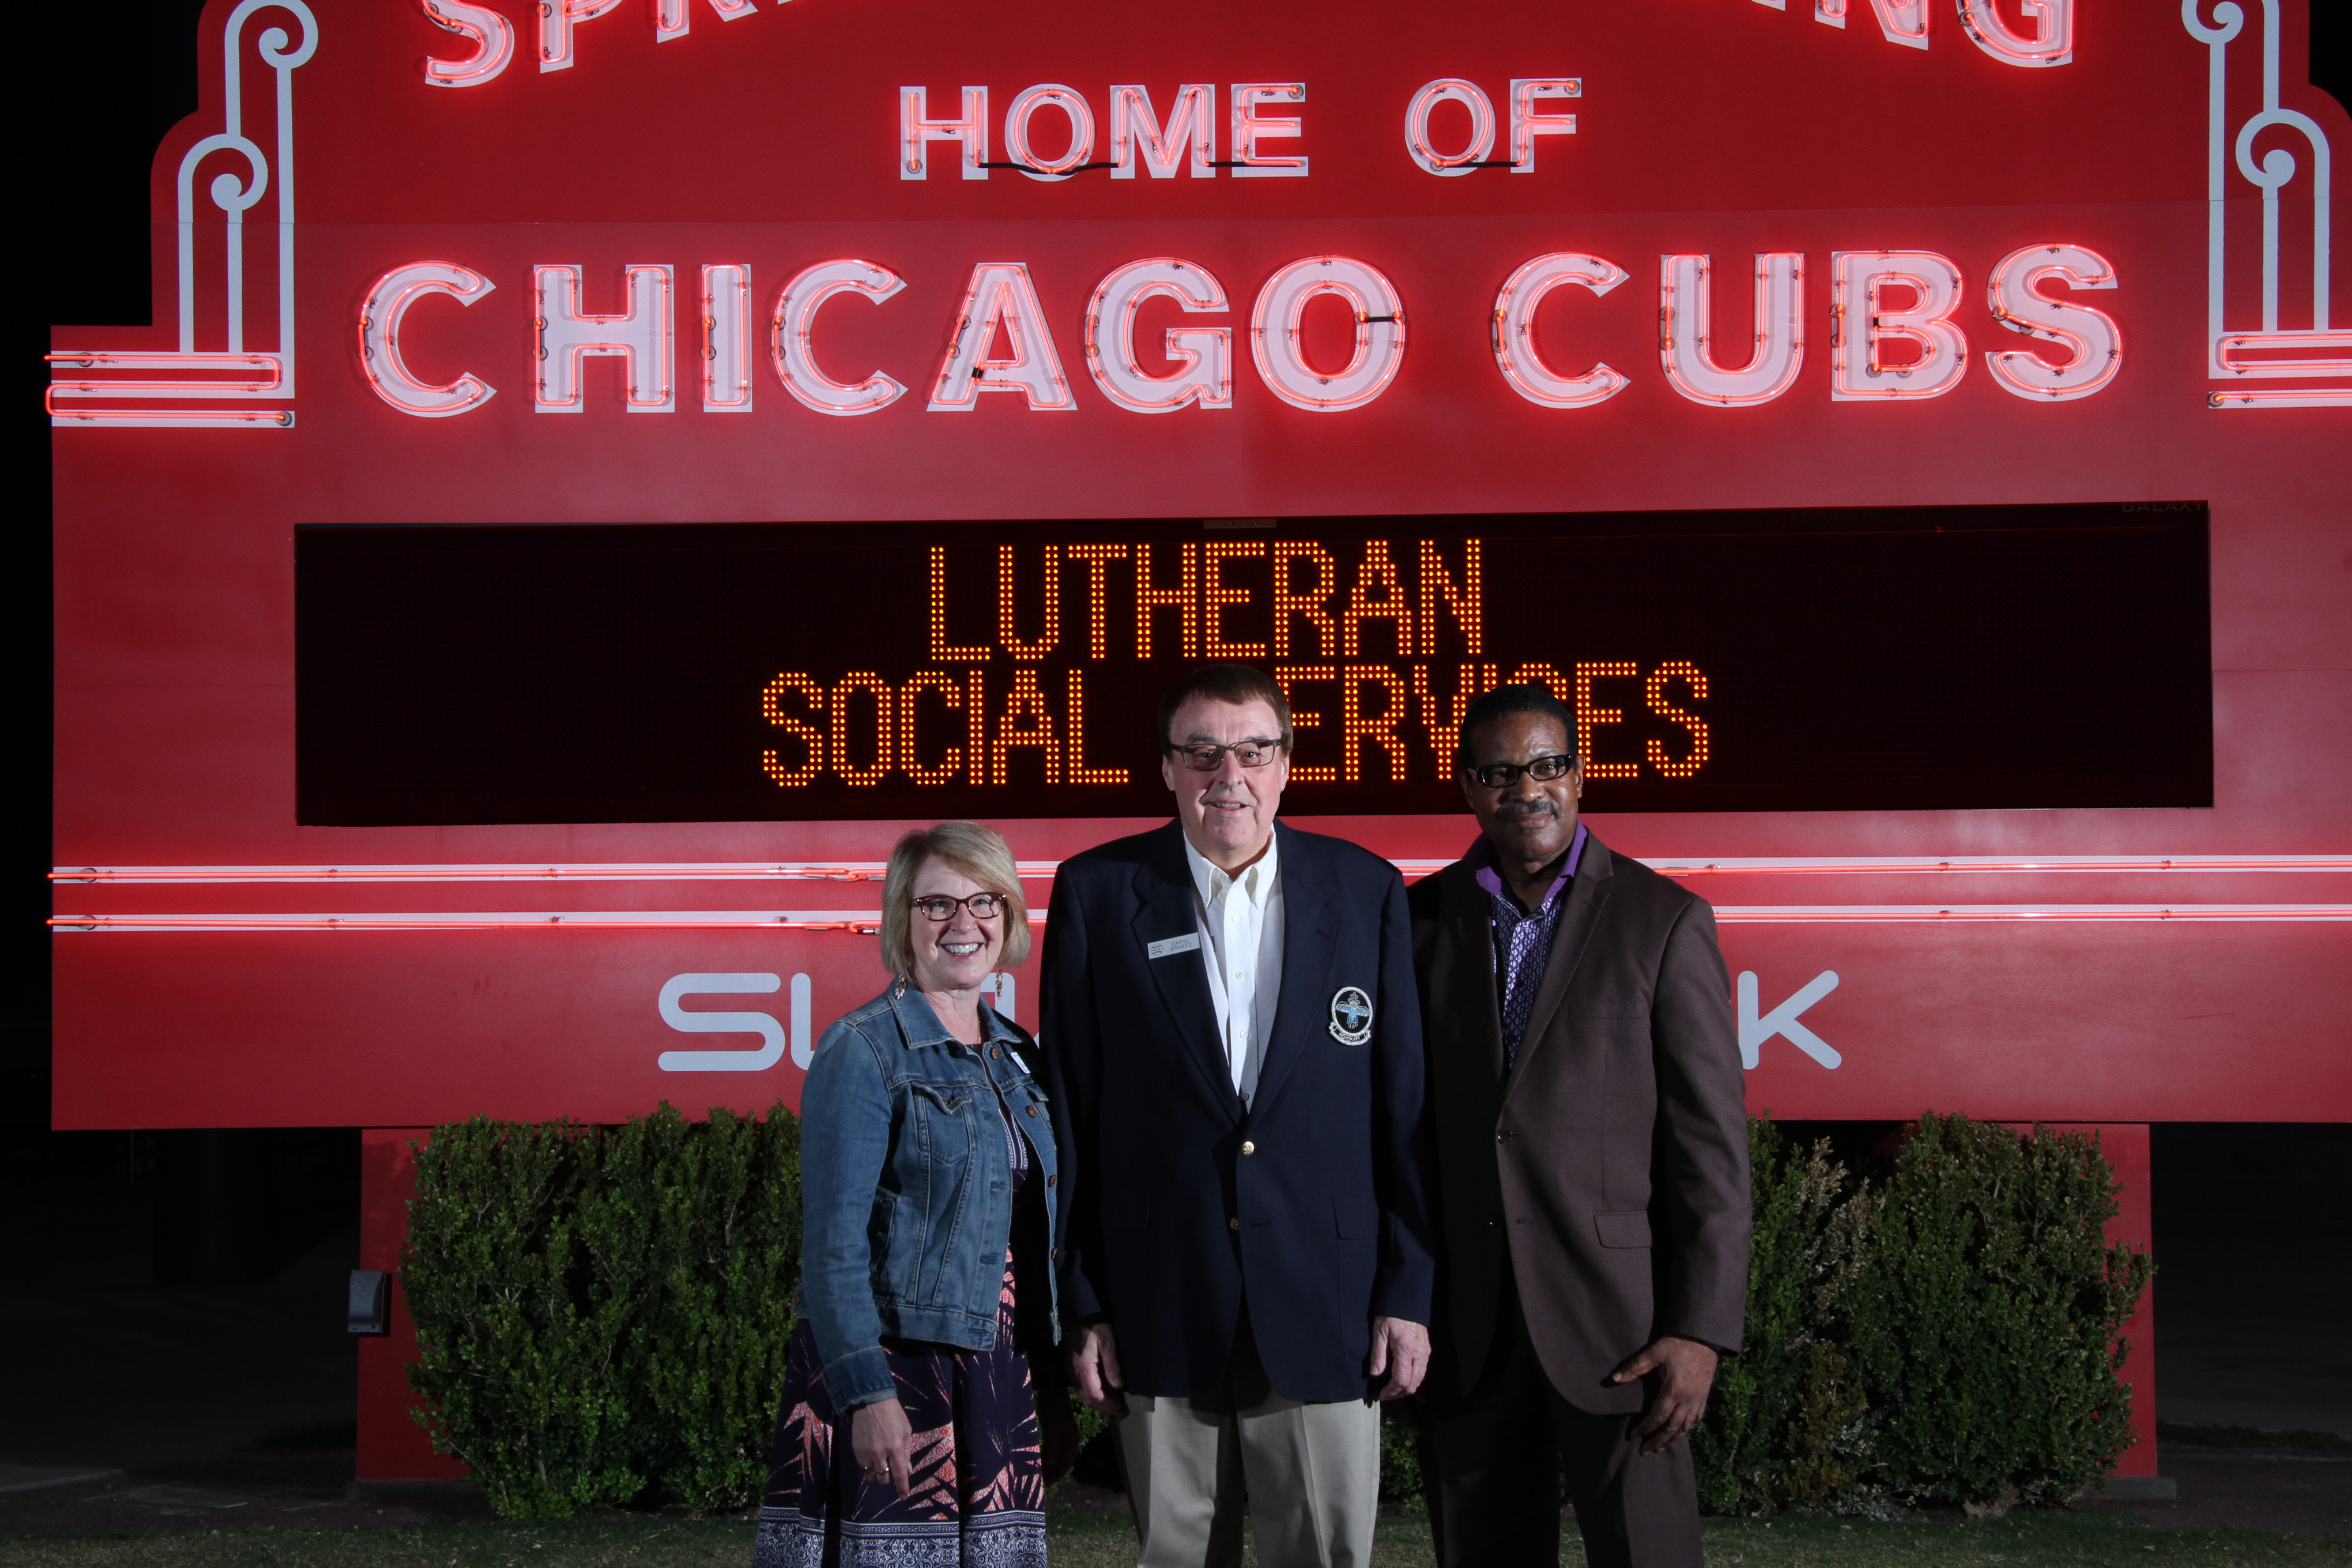 LutheranSocialServices